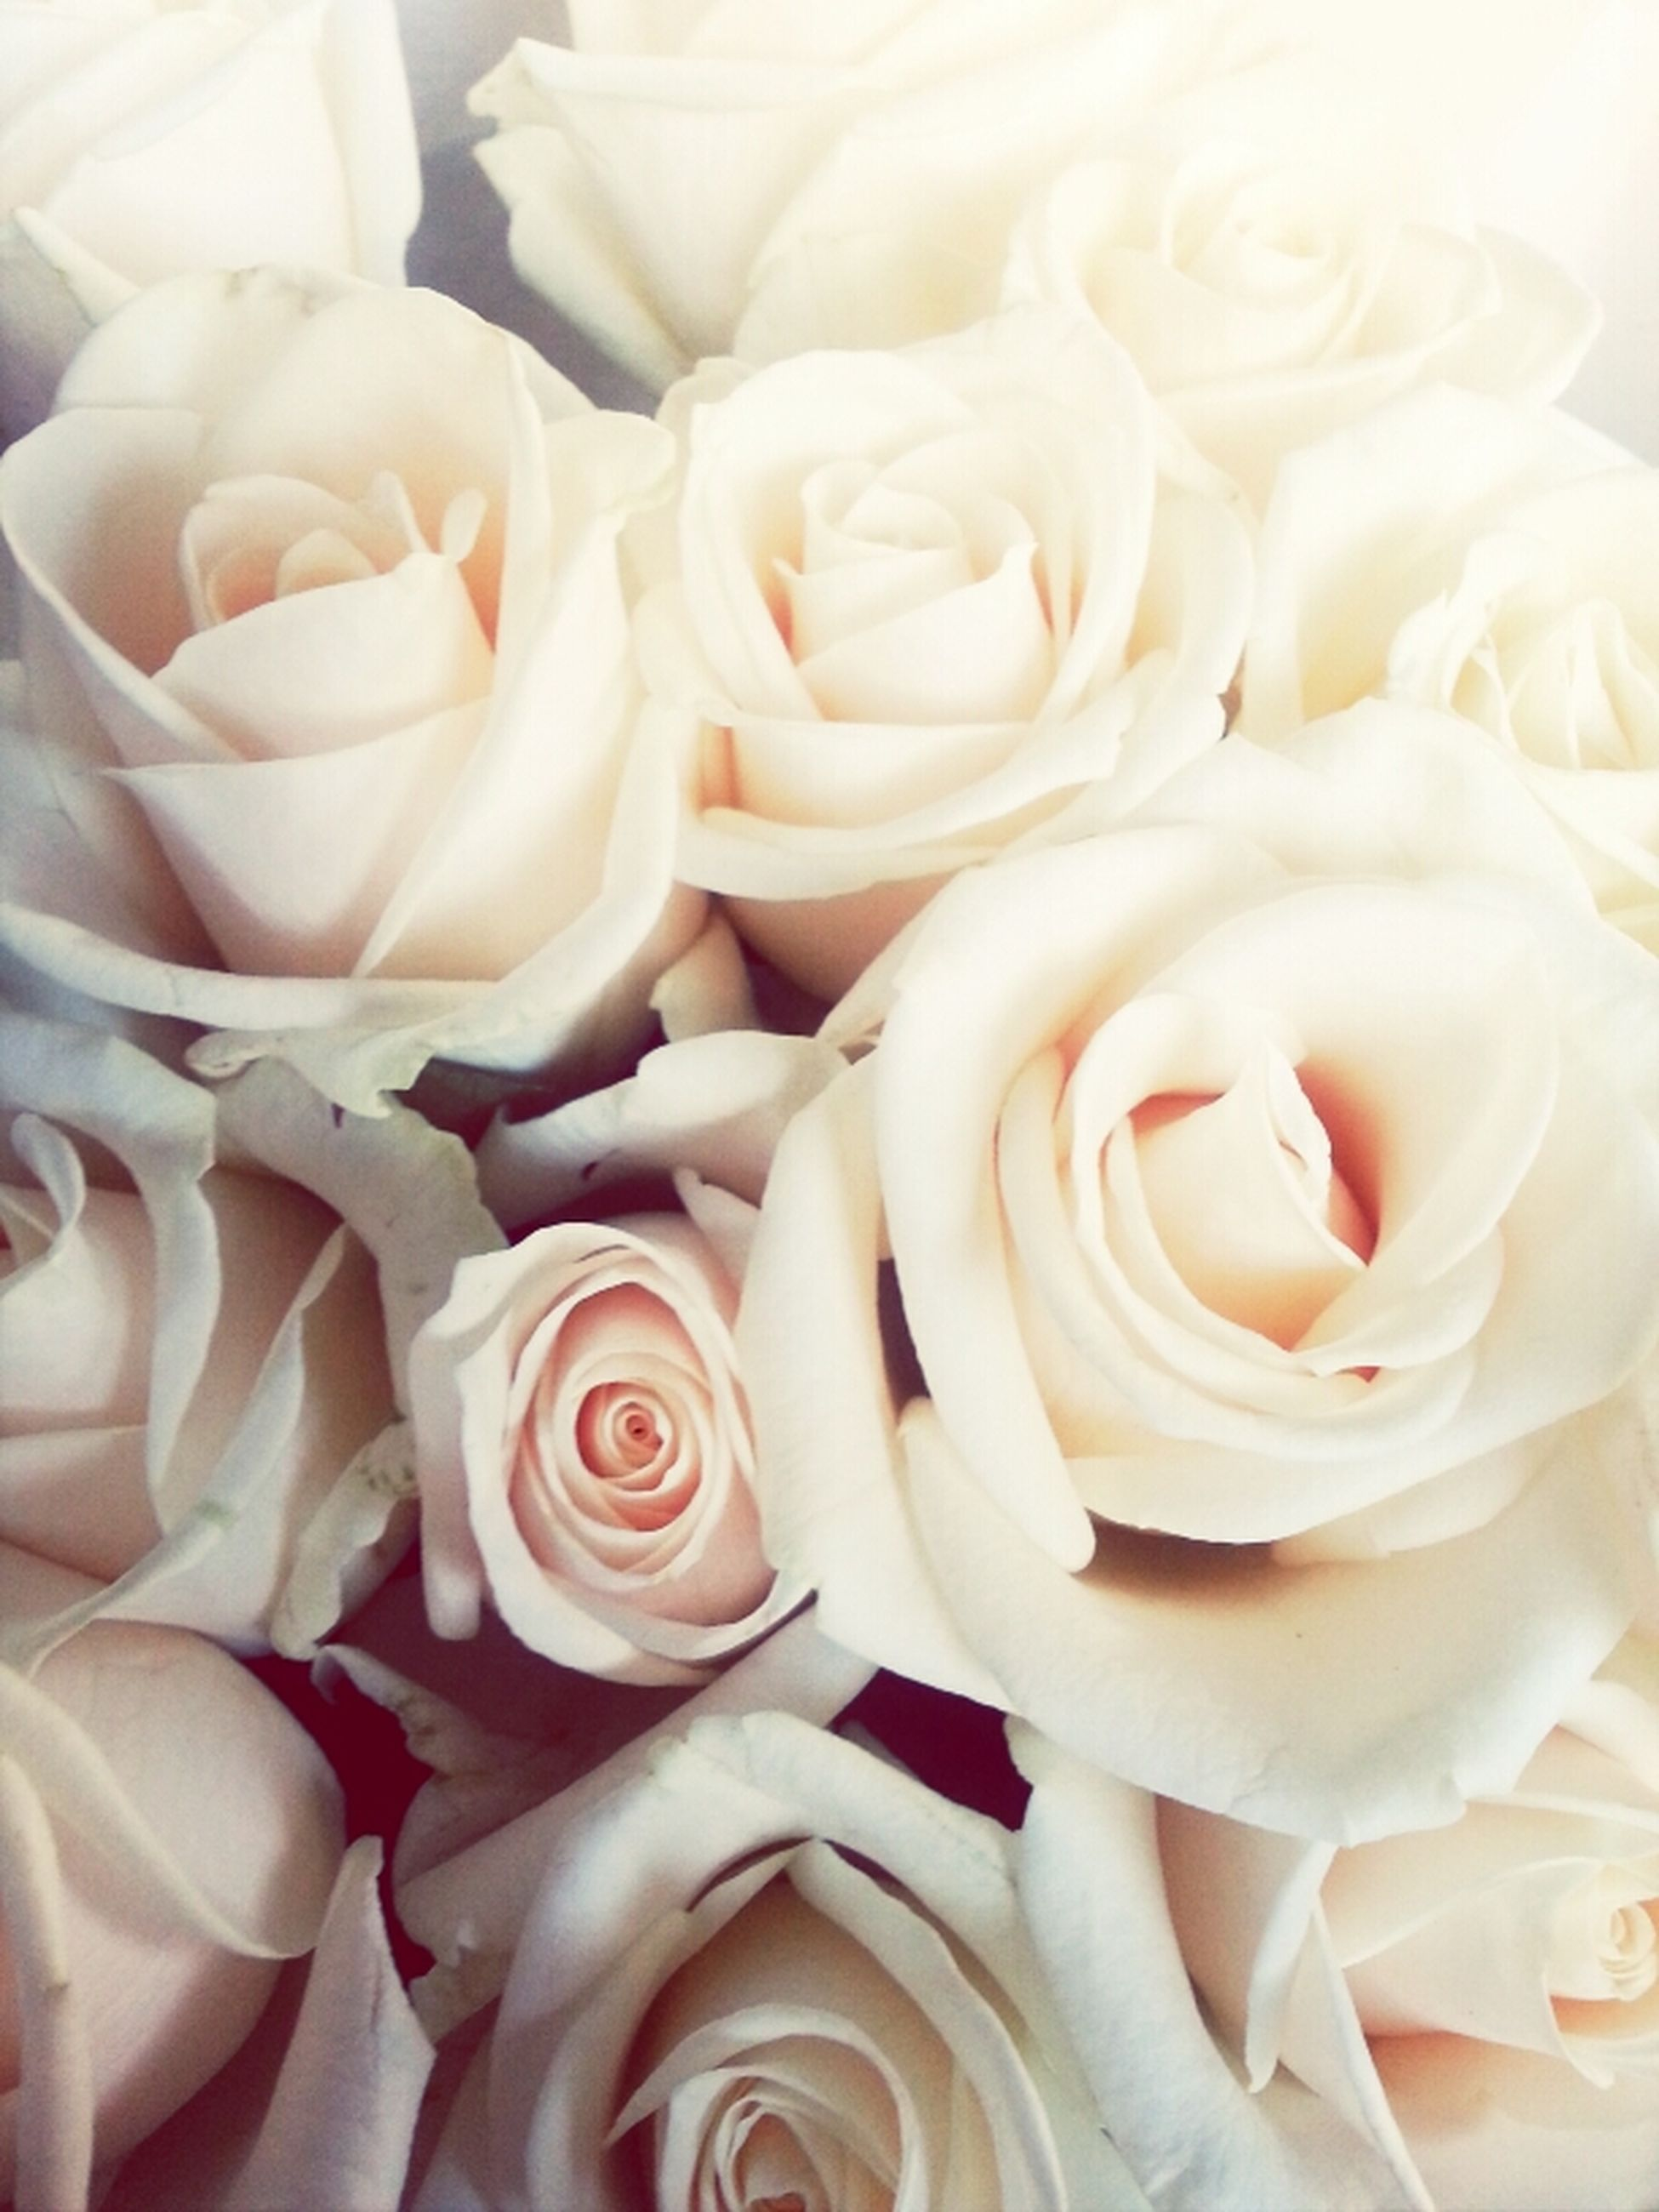 rose - flower, flower, freshness, petal, flower head, fragility, indoors, rose, close-up, full frame, beauty in nature, backgrounds, high angle view, white color, nature, no people, pink color, softness, detail, sweet food